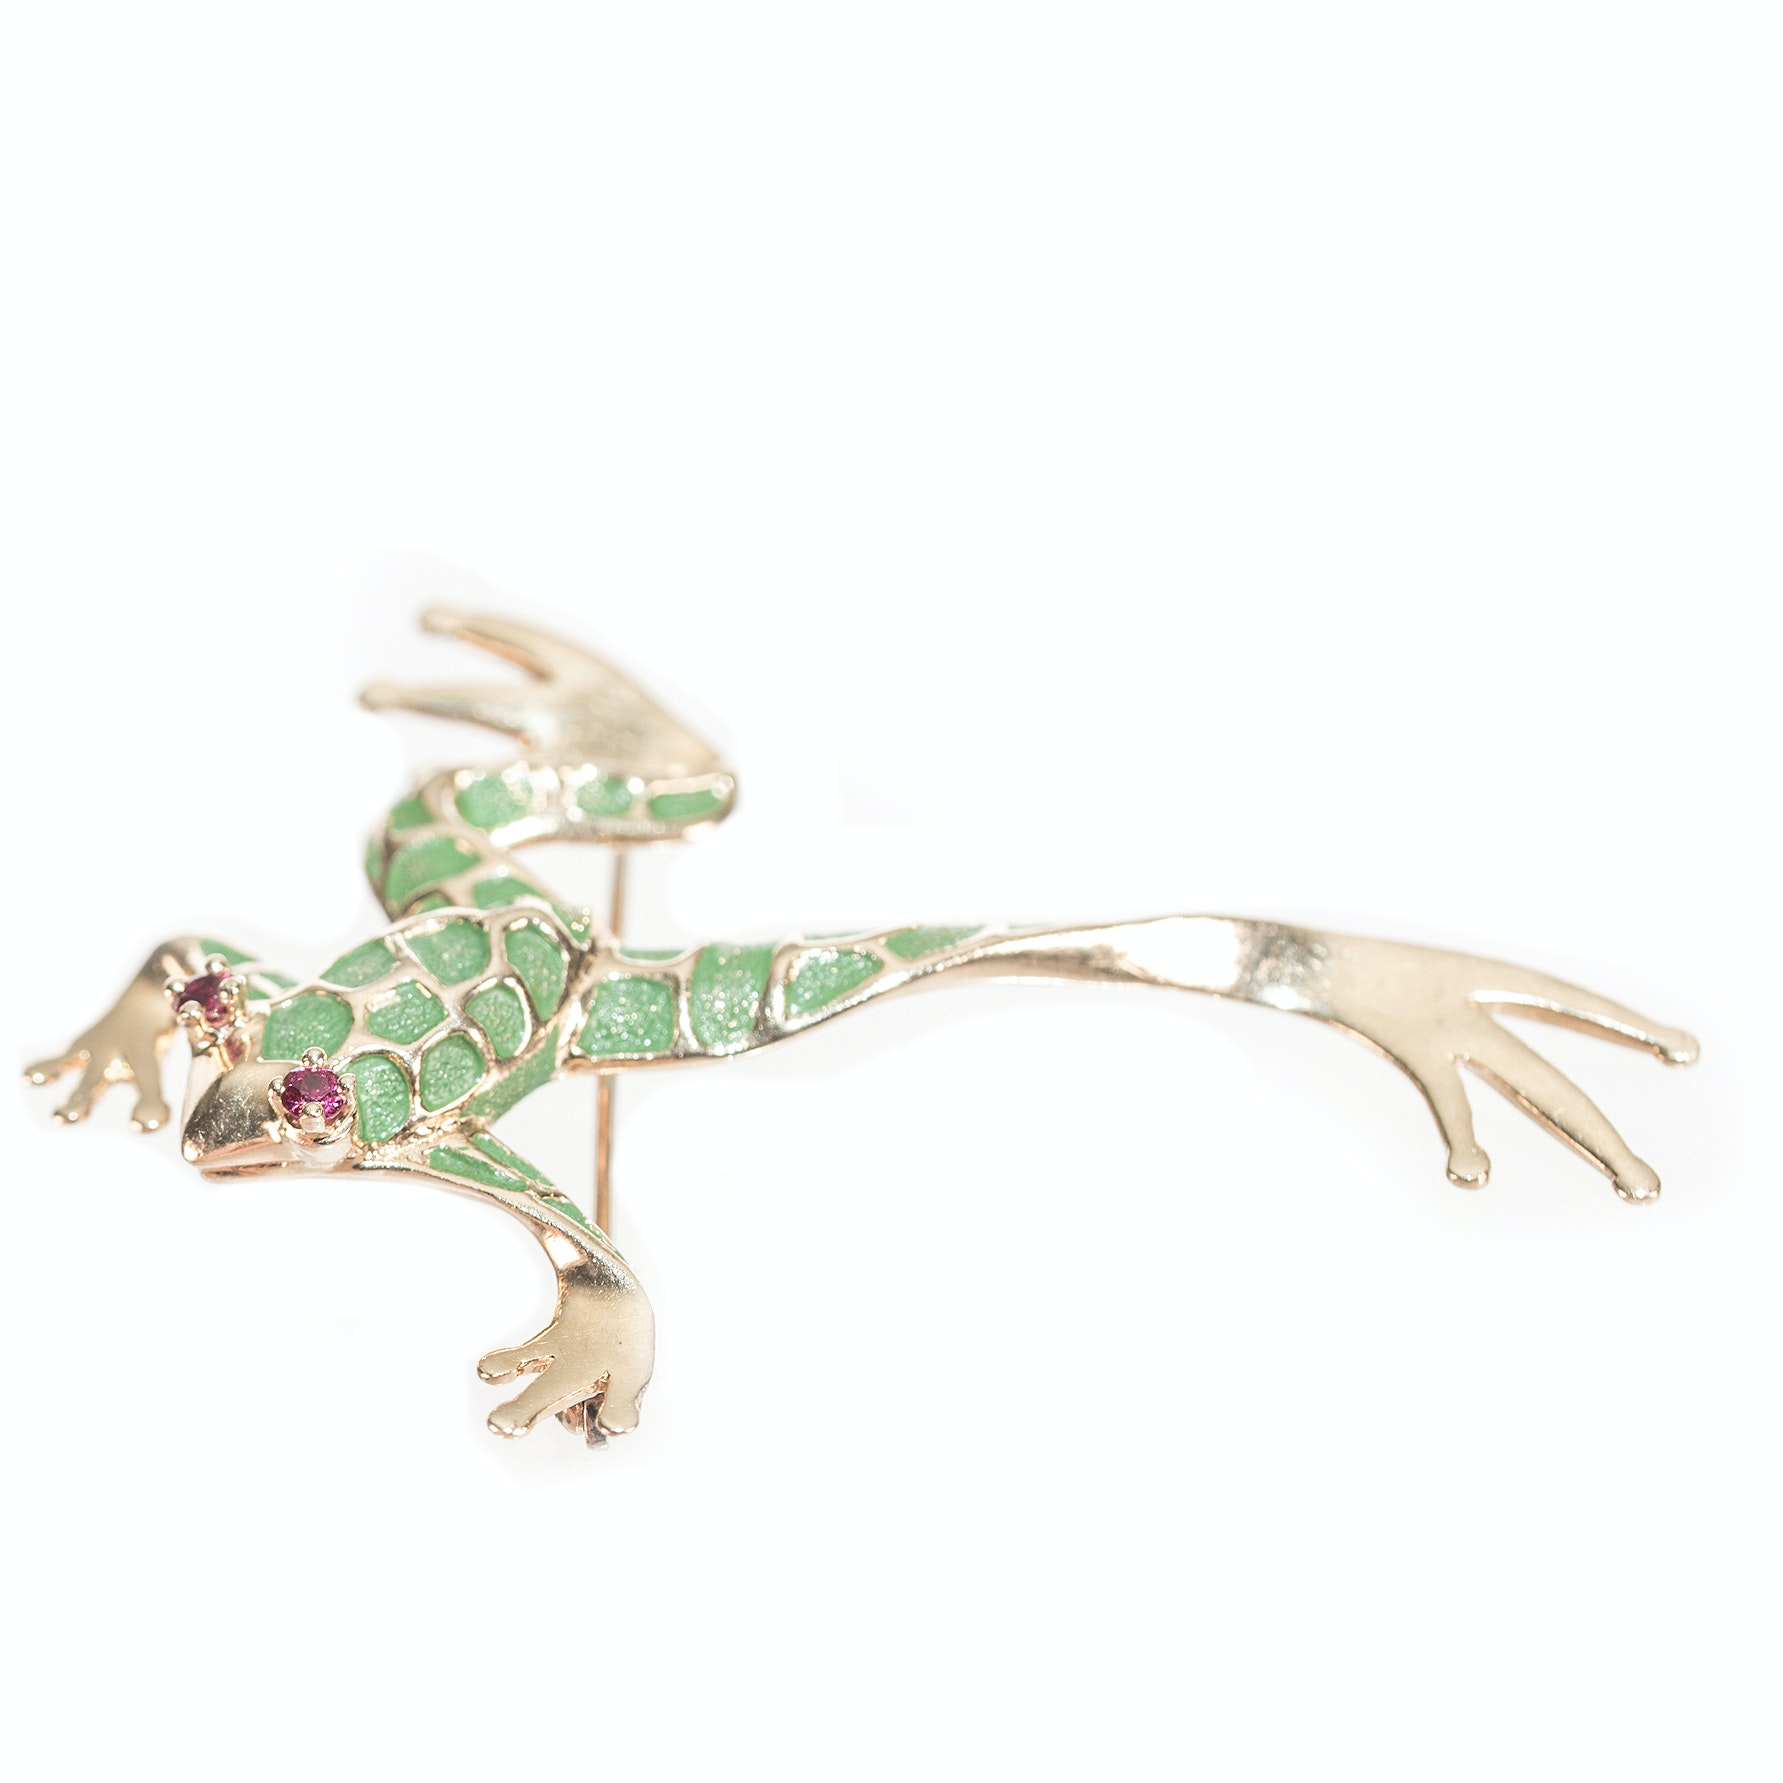 14K Yellow Gold Green Enamel and Ruby Frog Brooch